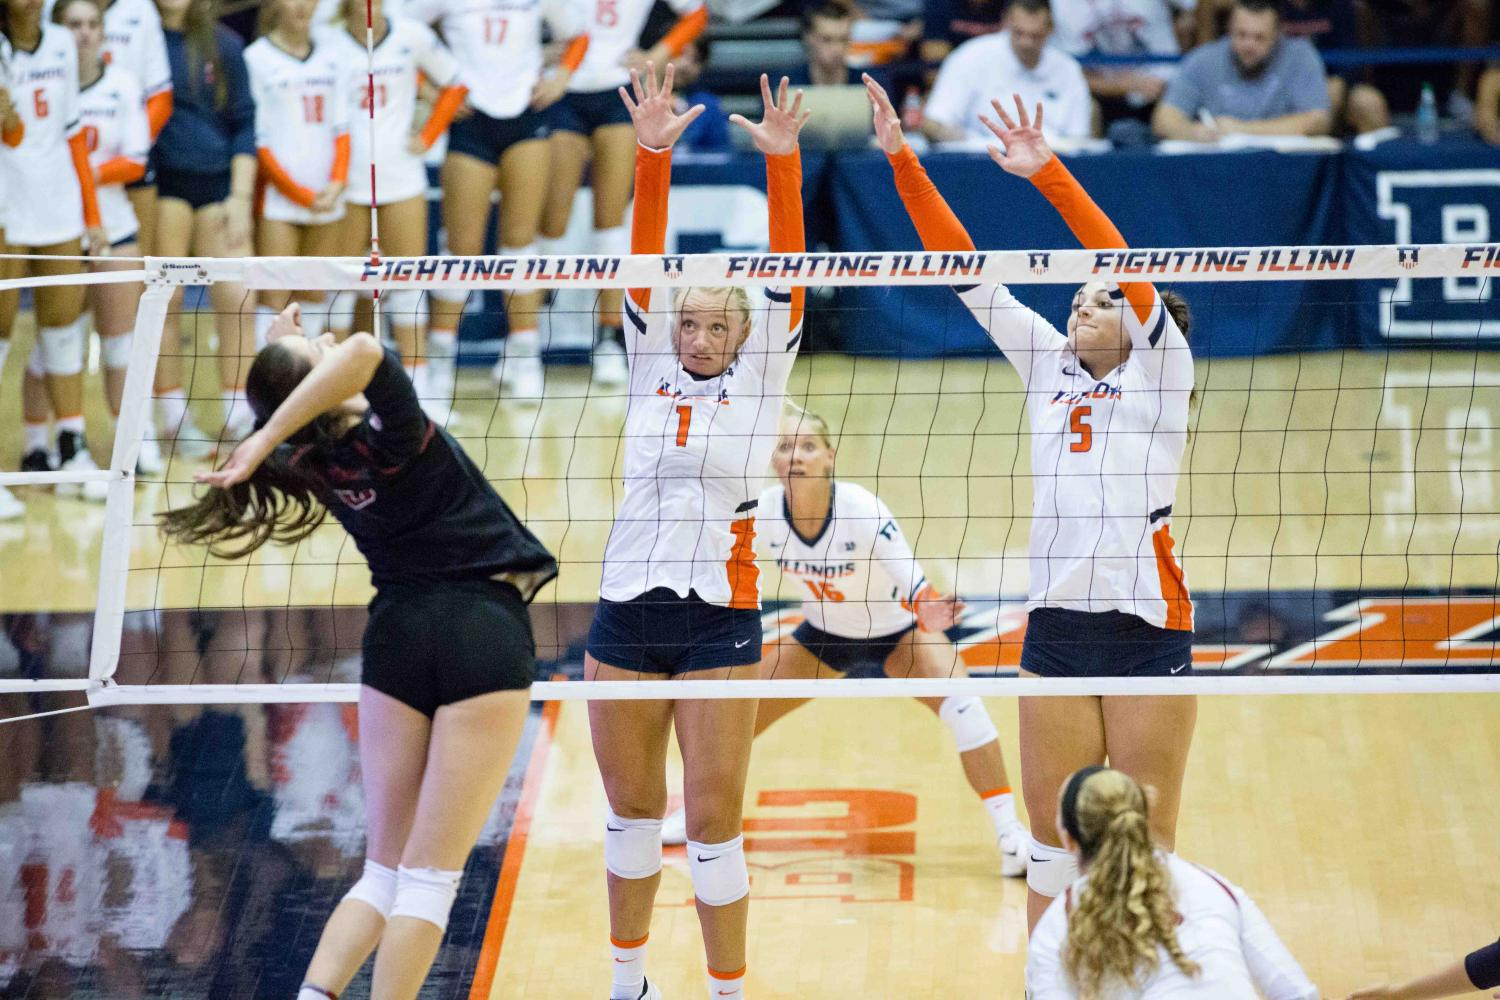 Illinois+setter+Jordyn+Poulter+and+middle+blocker+Ali+Bastianelli+attempt+to+block+Stanford%0Aoutside+hitter+Michaela+Keefe%E2%80%99s+hit+during+the+match+against+Stanford+at+Huff+Hall+on+Friday%2C%0ASept.+8.+The+Illini+lost+3-0.